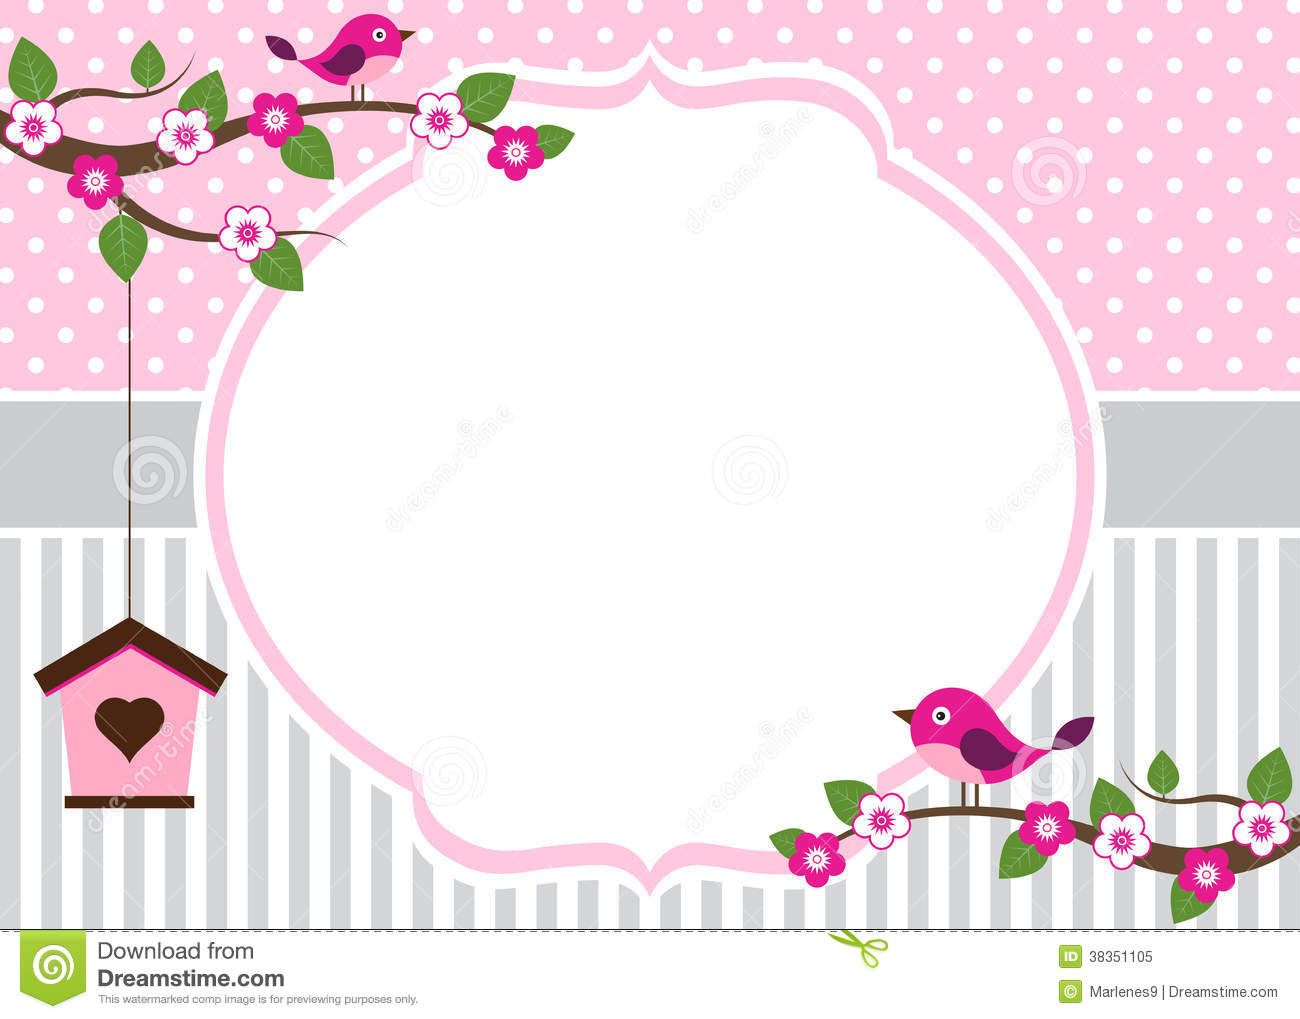 Printable Wedding Invitations Templates is beautiful invitations layout